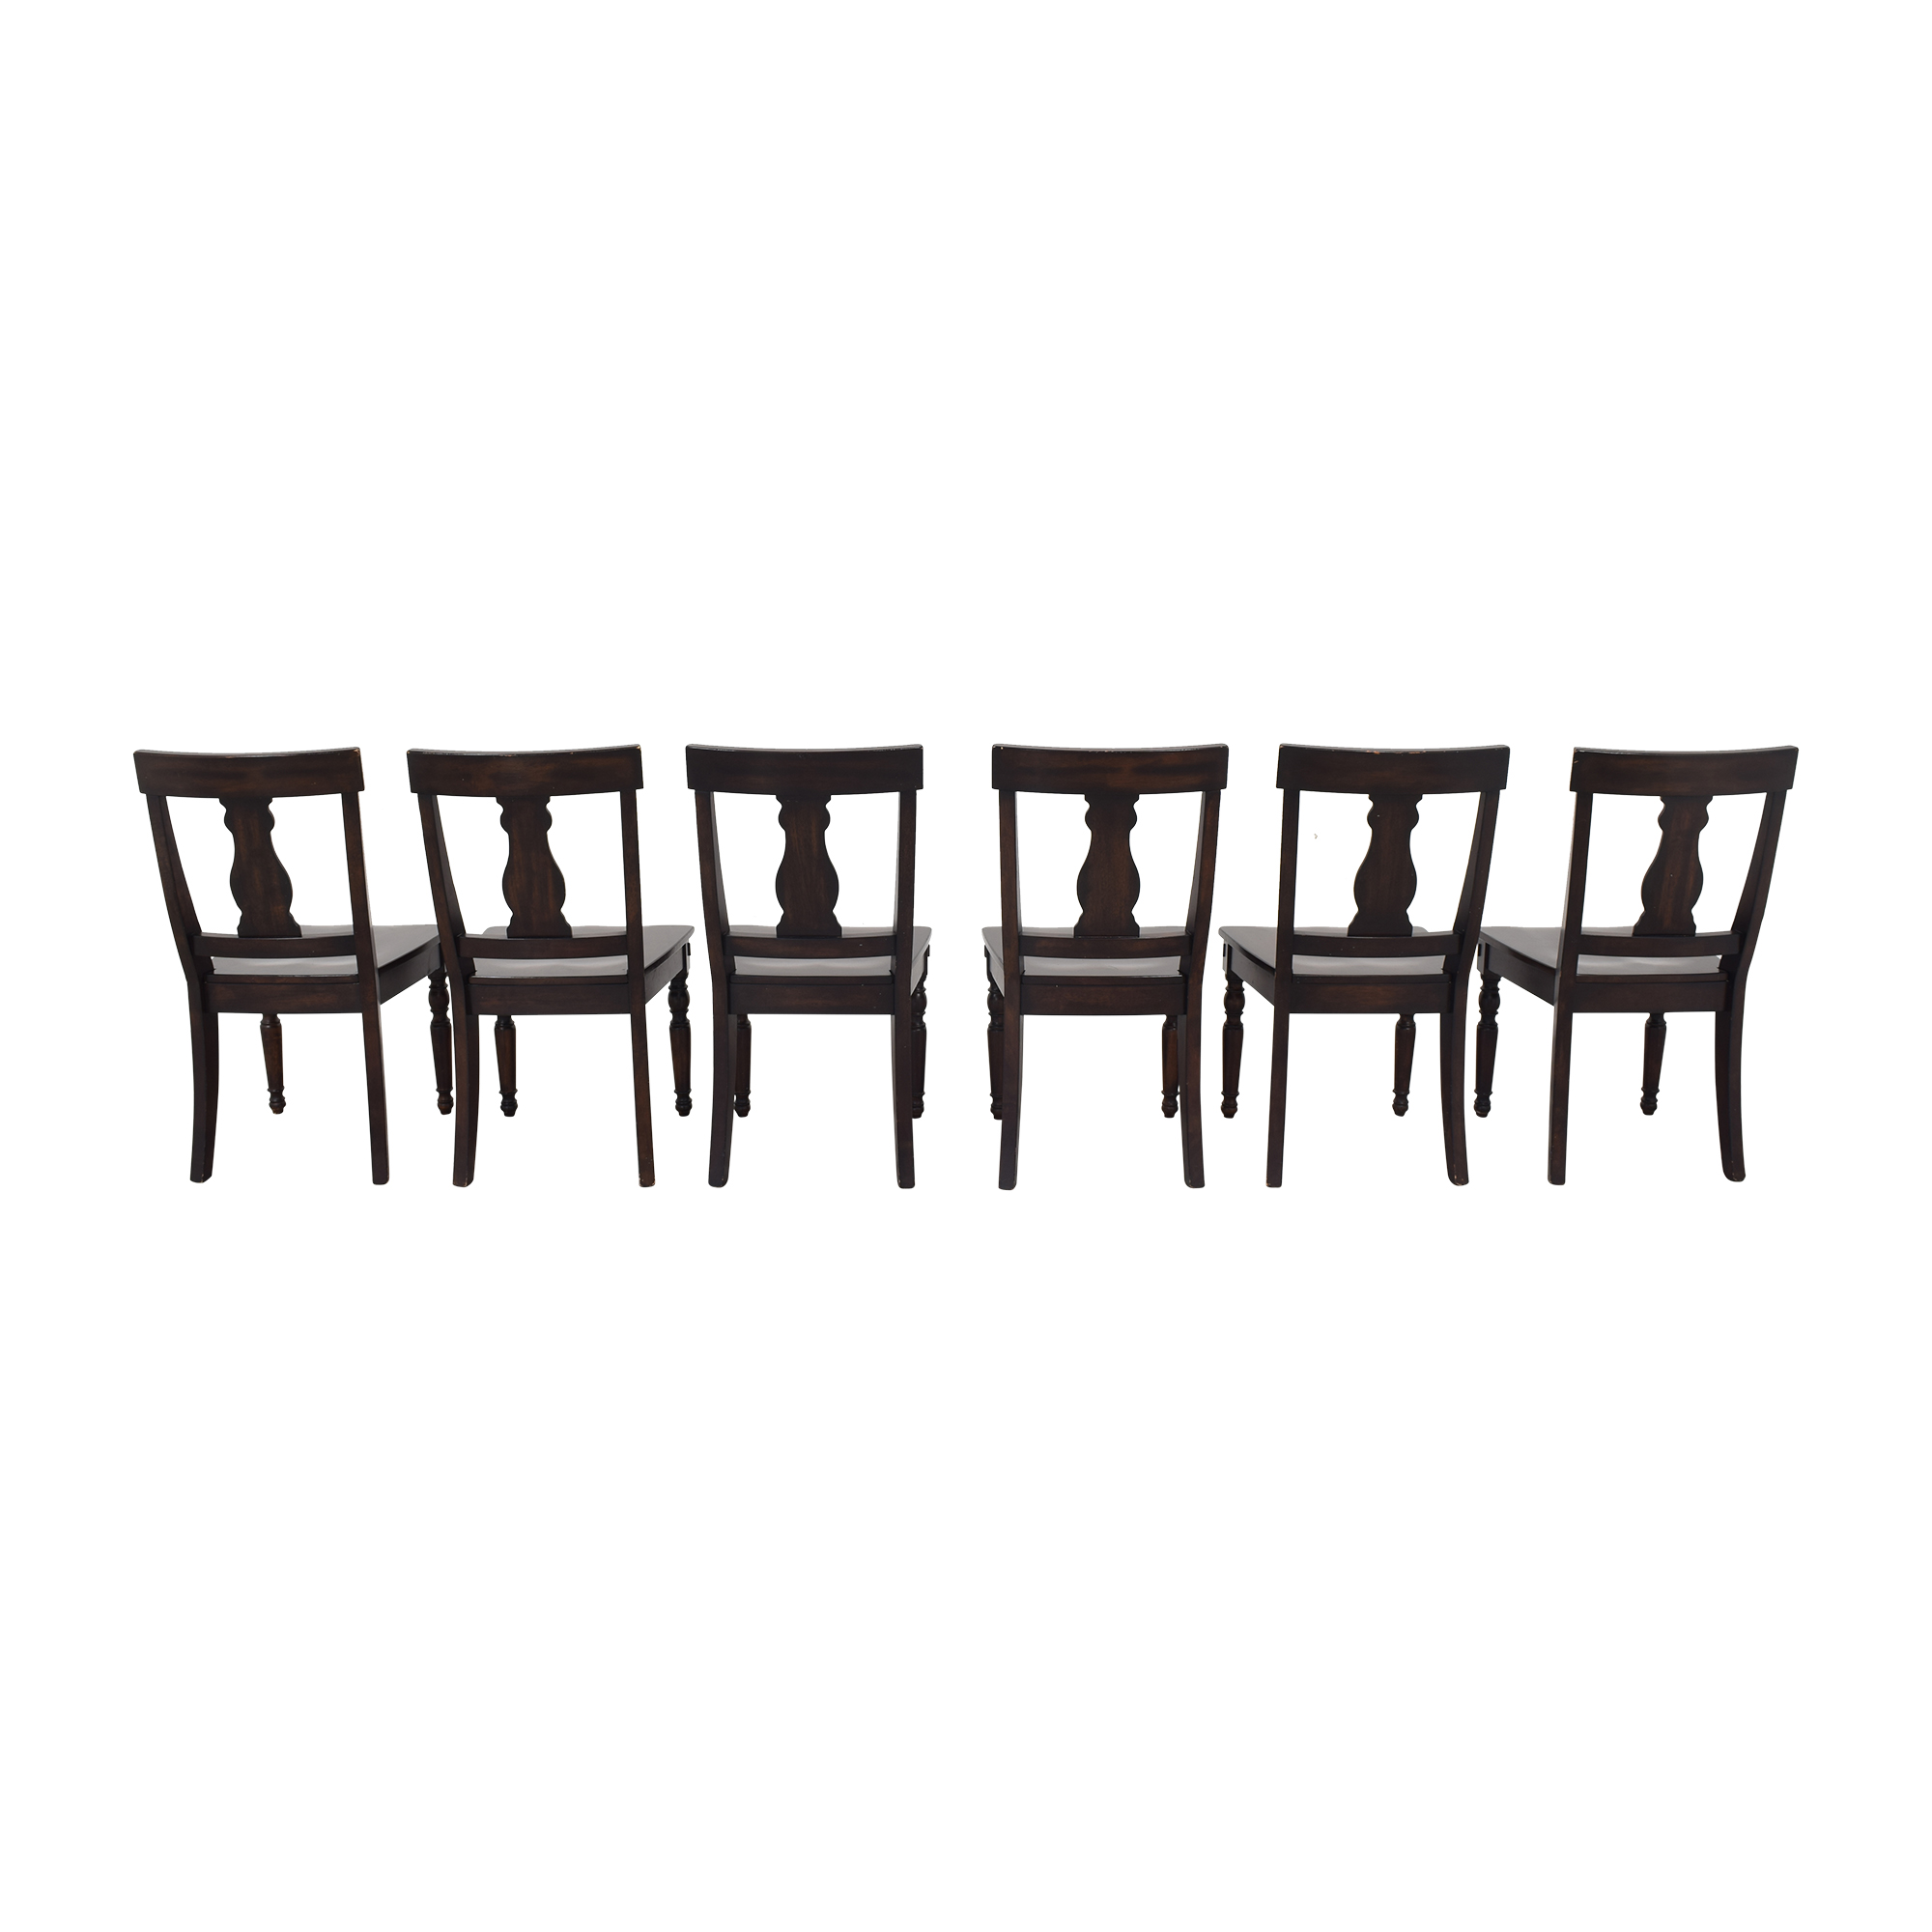 Pottery Barn Pottery Barn Fiddleback Dining Chairs second hand